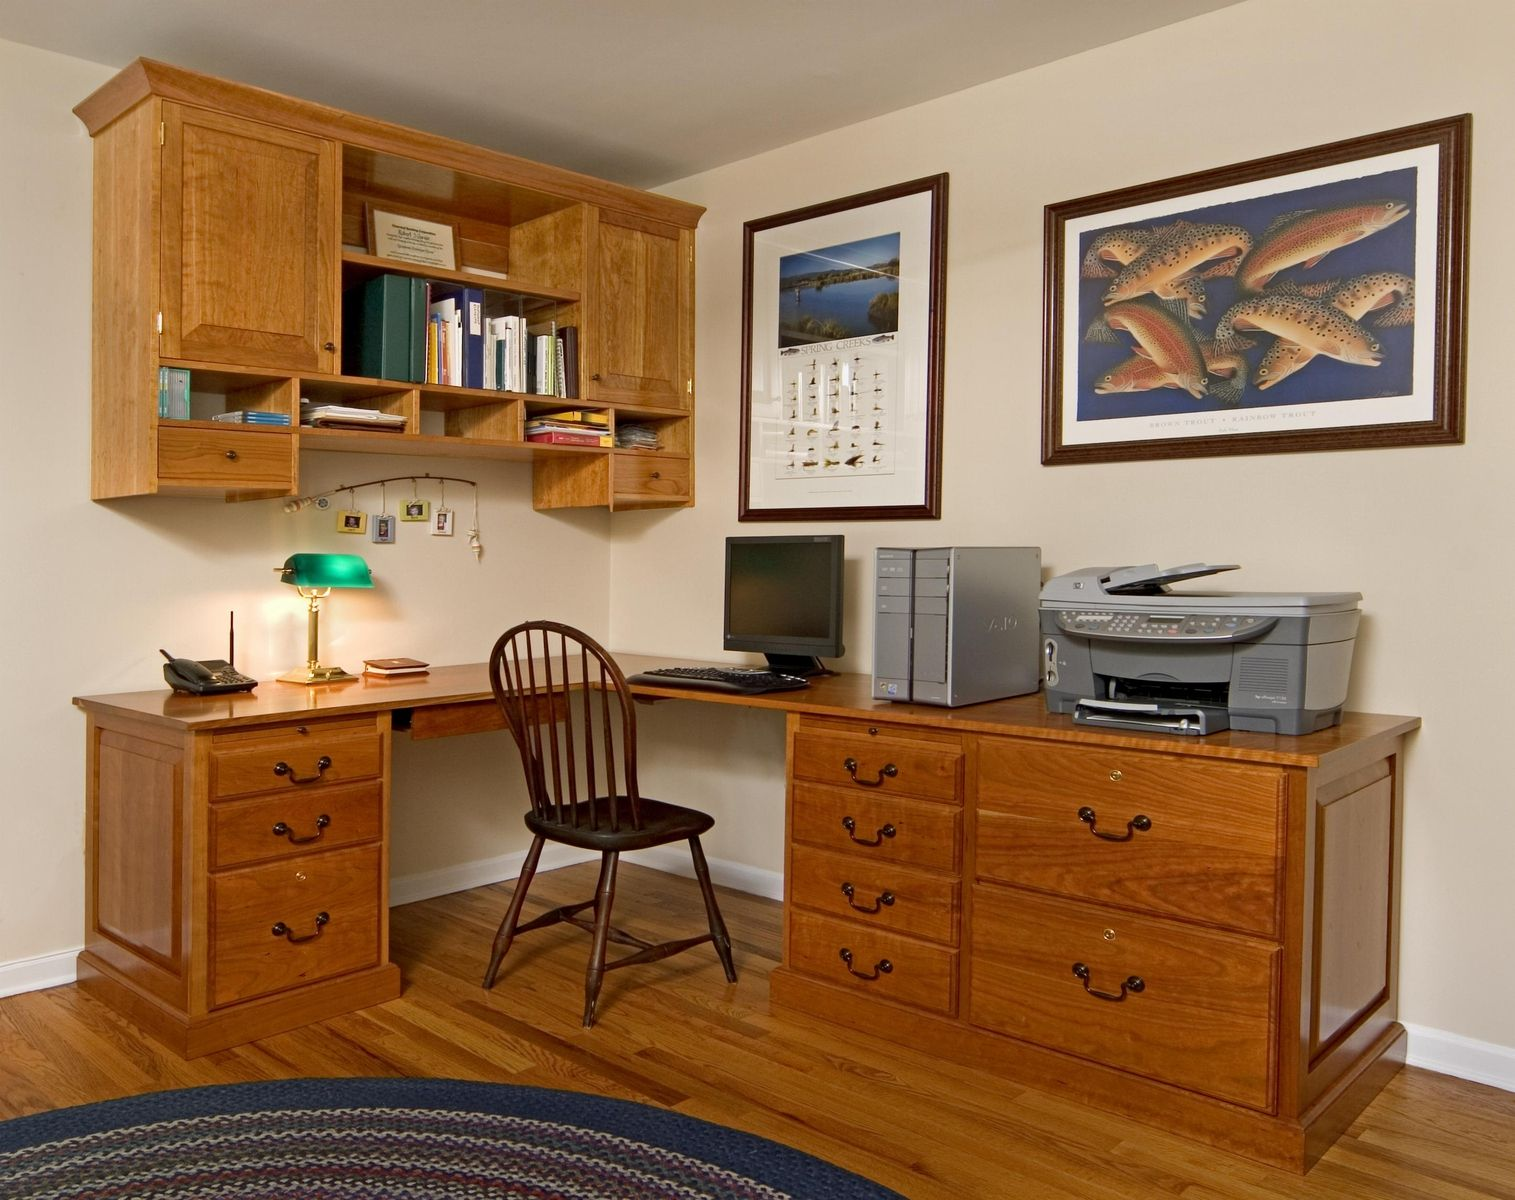 Handmade Custom Home Office Desk And Cabinet By John Landis Cabinetworks Cu